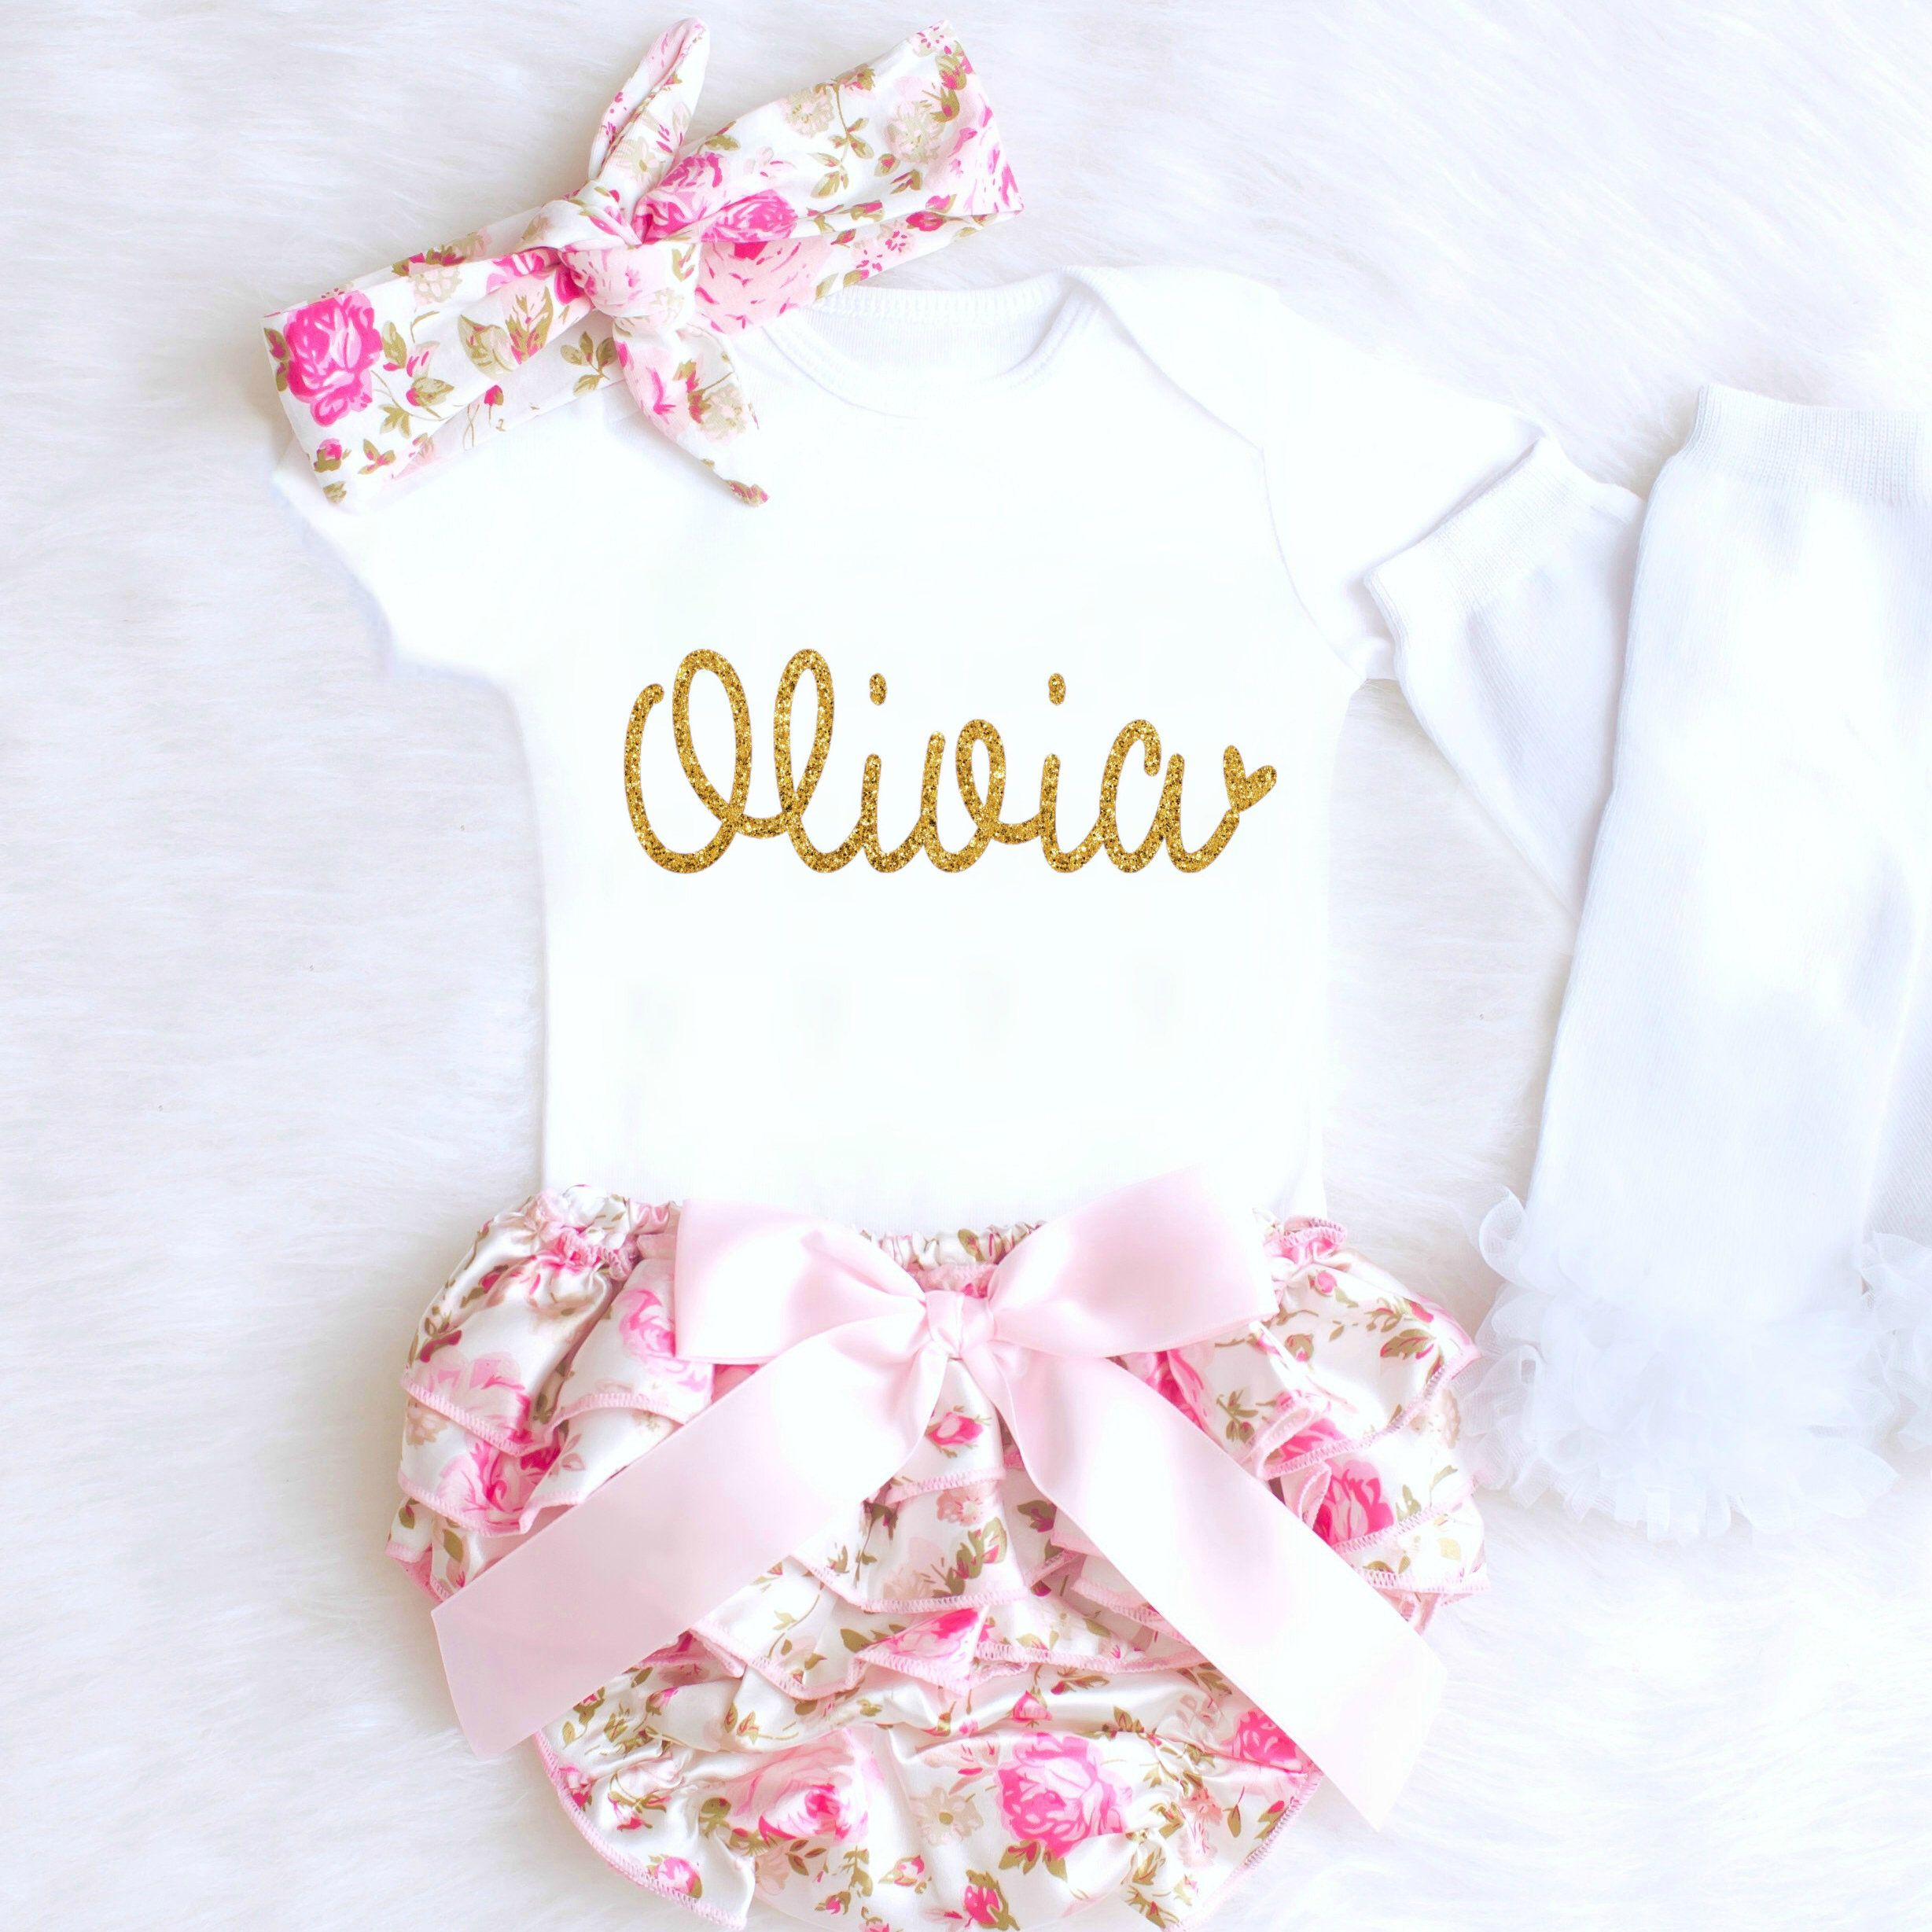 bb28b73a5785 Baby Girl Coming Home Outfit Baby Girl Clothes Personalized Newborn Girl  Outfit Spring Floral Bloomers Summer Baby Girl Outfit monogram 1  Affiliate